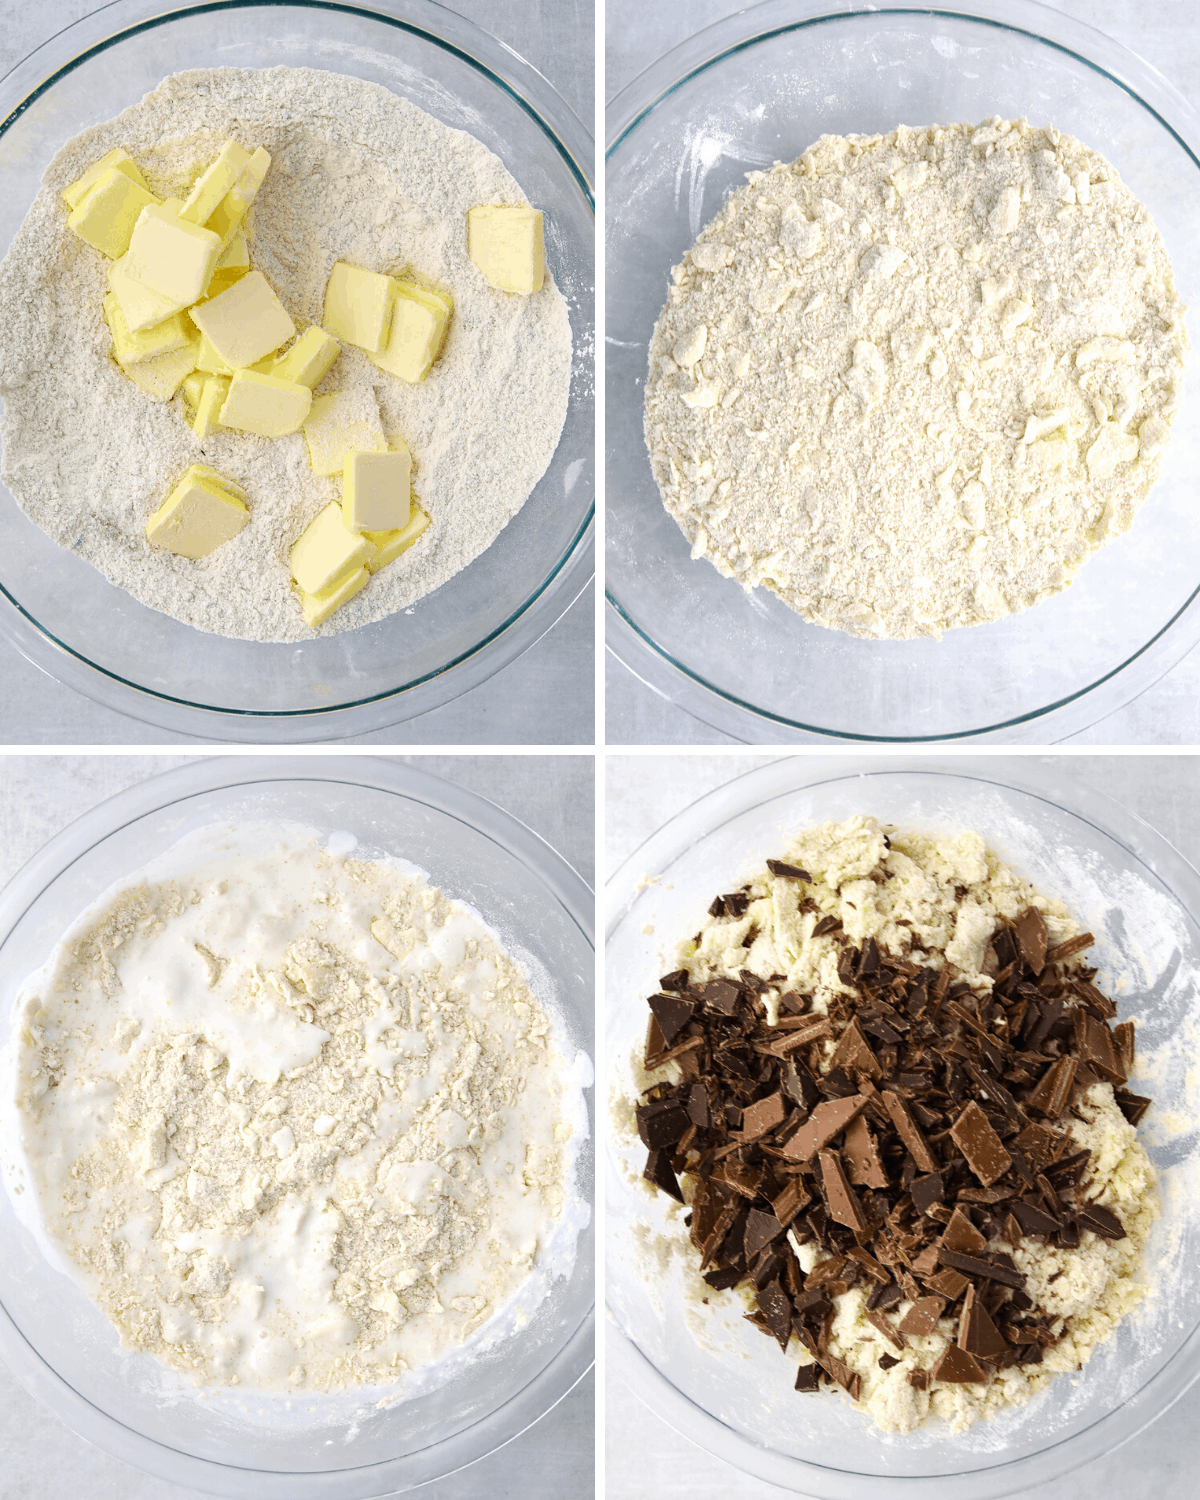 recipe step collage for chocolate scones, flour mixing in a glass bowl with butter then buttermilk and chopped chocolate